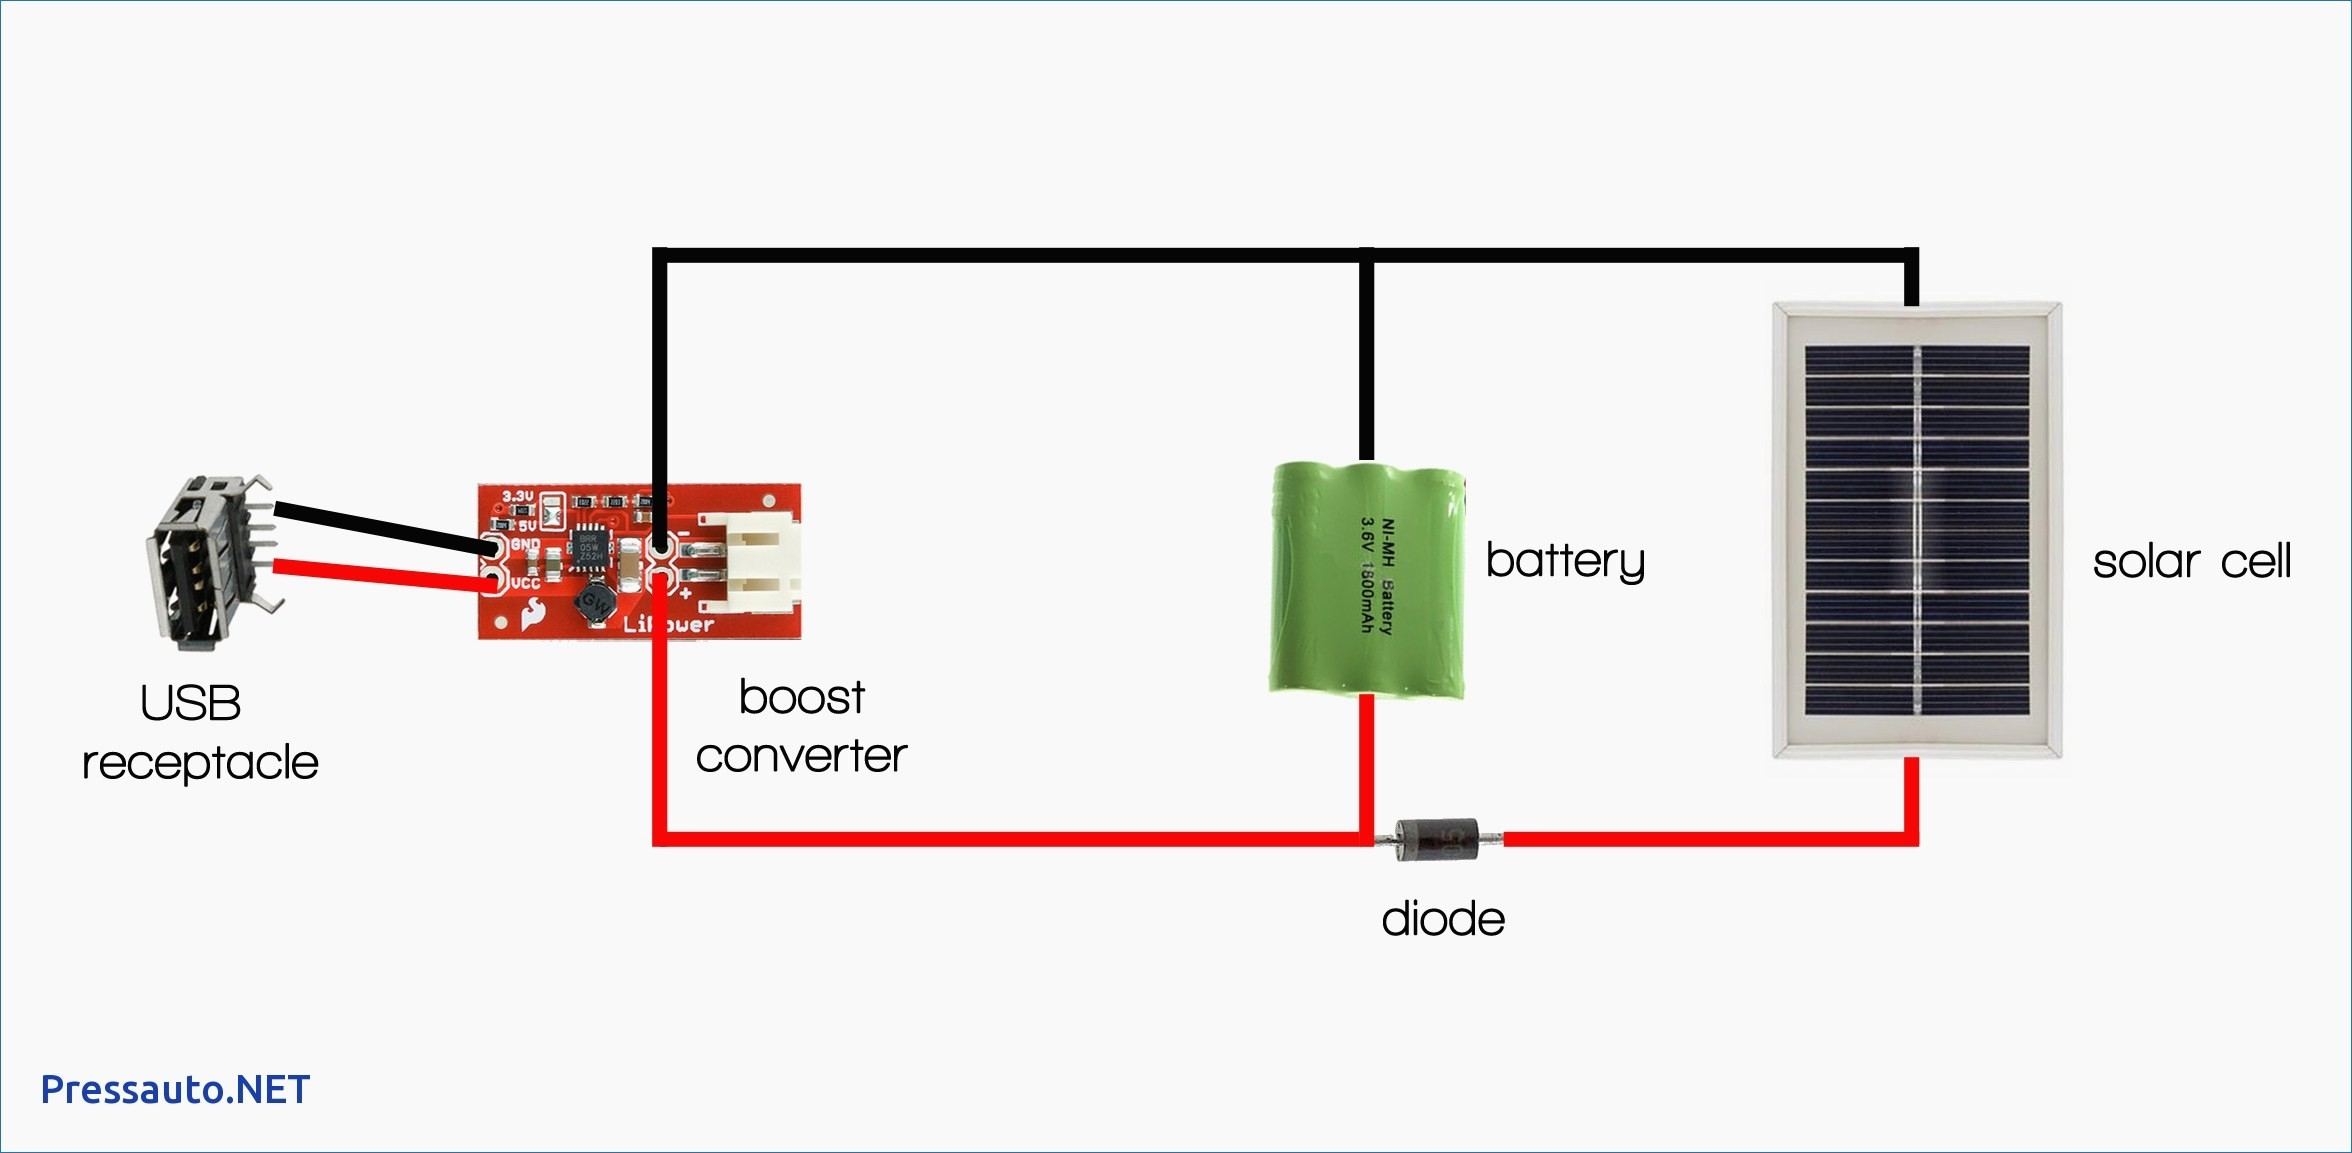 Micro Usb Wiring Diagram | Wiring Library - Wiring Diagram For Usb Cable